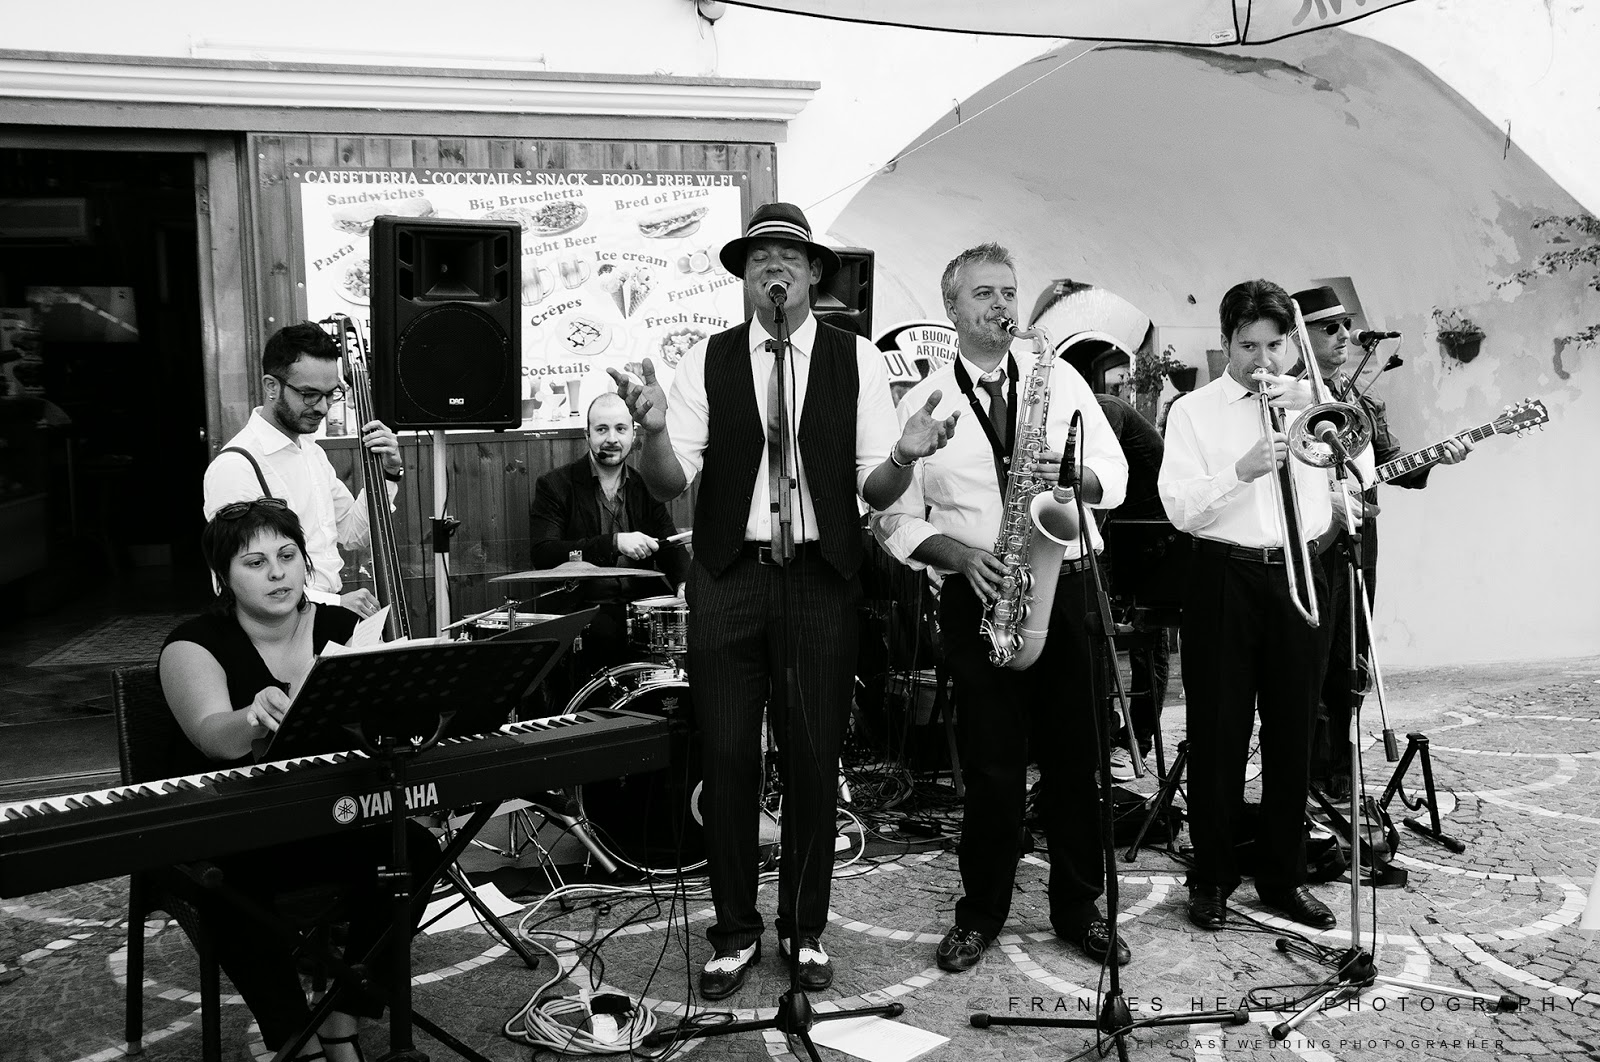 Italian swing band playing music on the Amalfi Coast